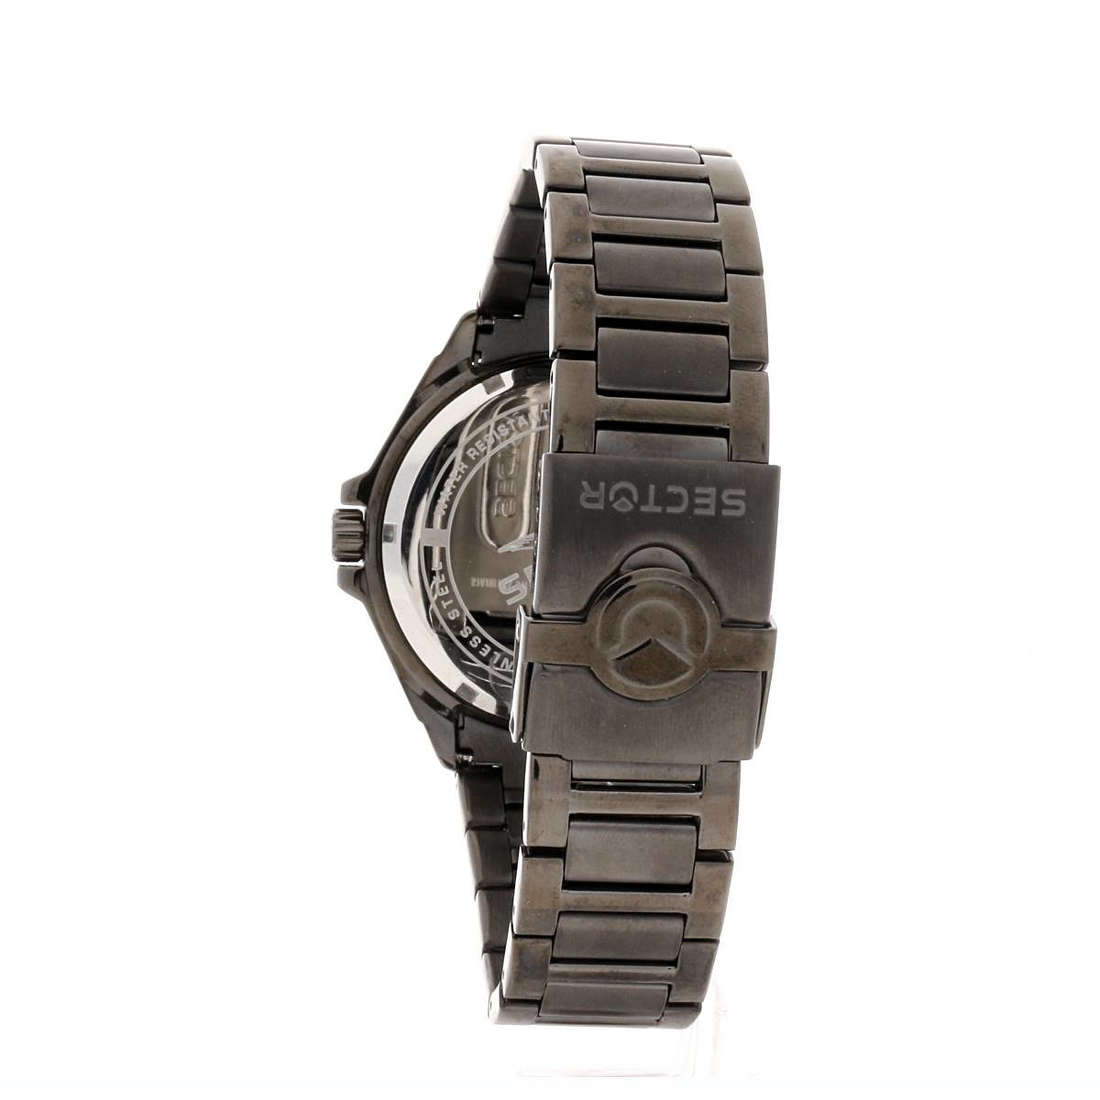 new watches man Sector R3223587001